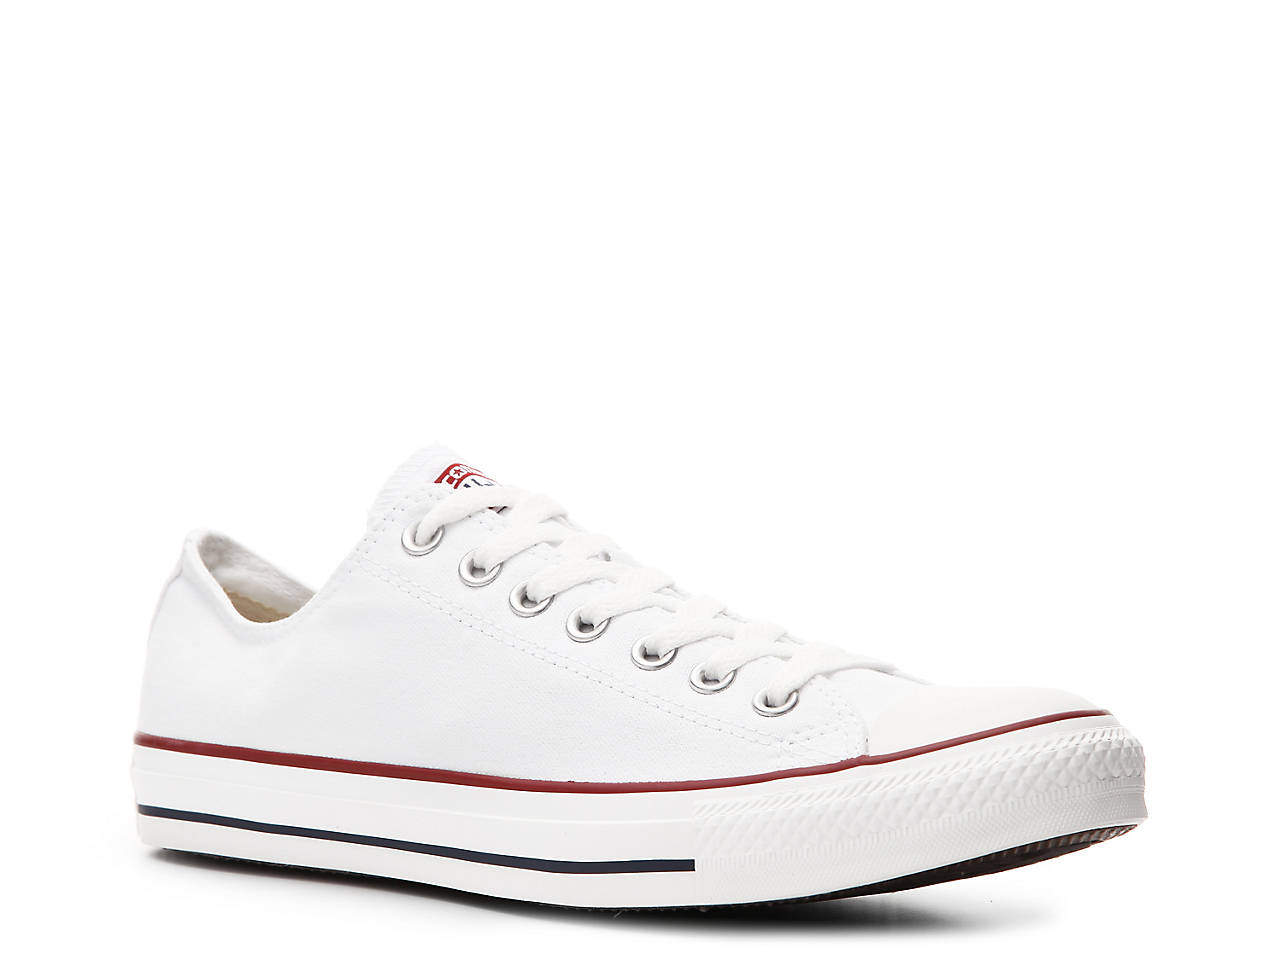 ceaf453434b4 Converse Chuck Taylor All Star Sneaker - Men s Men s Shoes